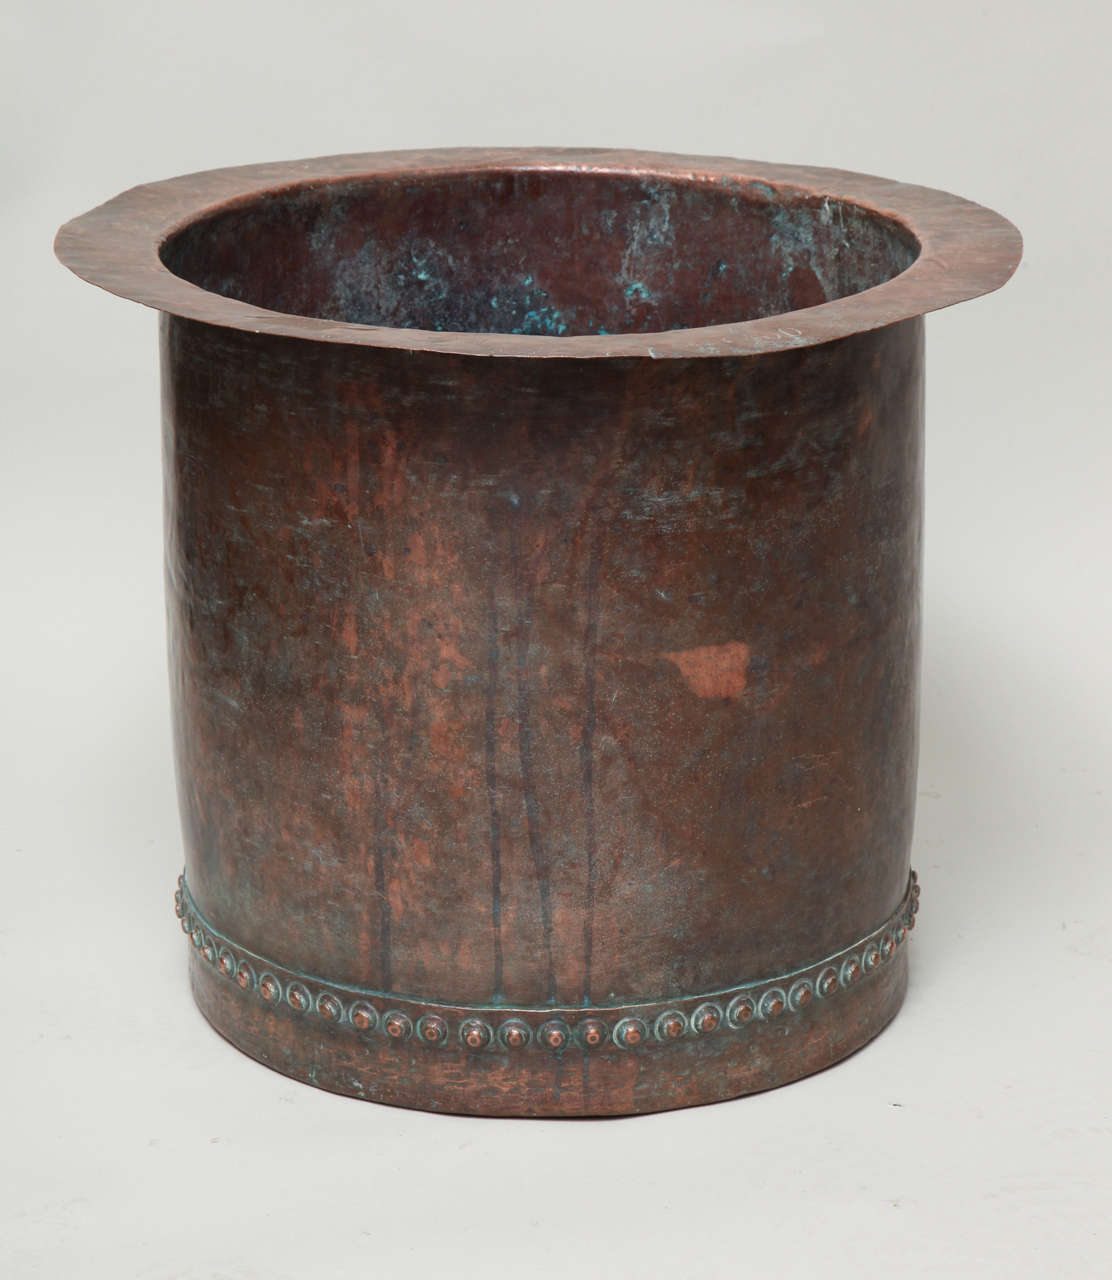 Fantastic Riveted Copper Early 19th Century Oversize Log Bin In Good Condition For Sale In New York, NY